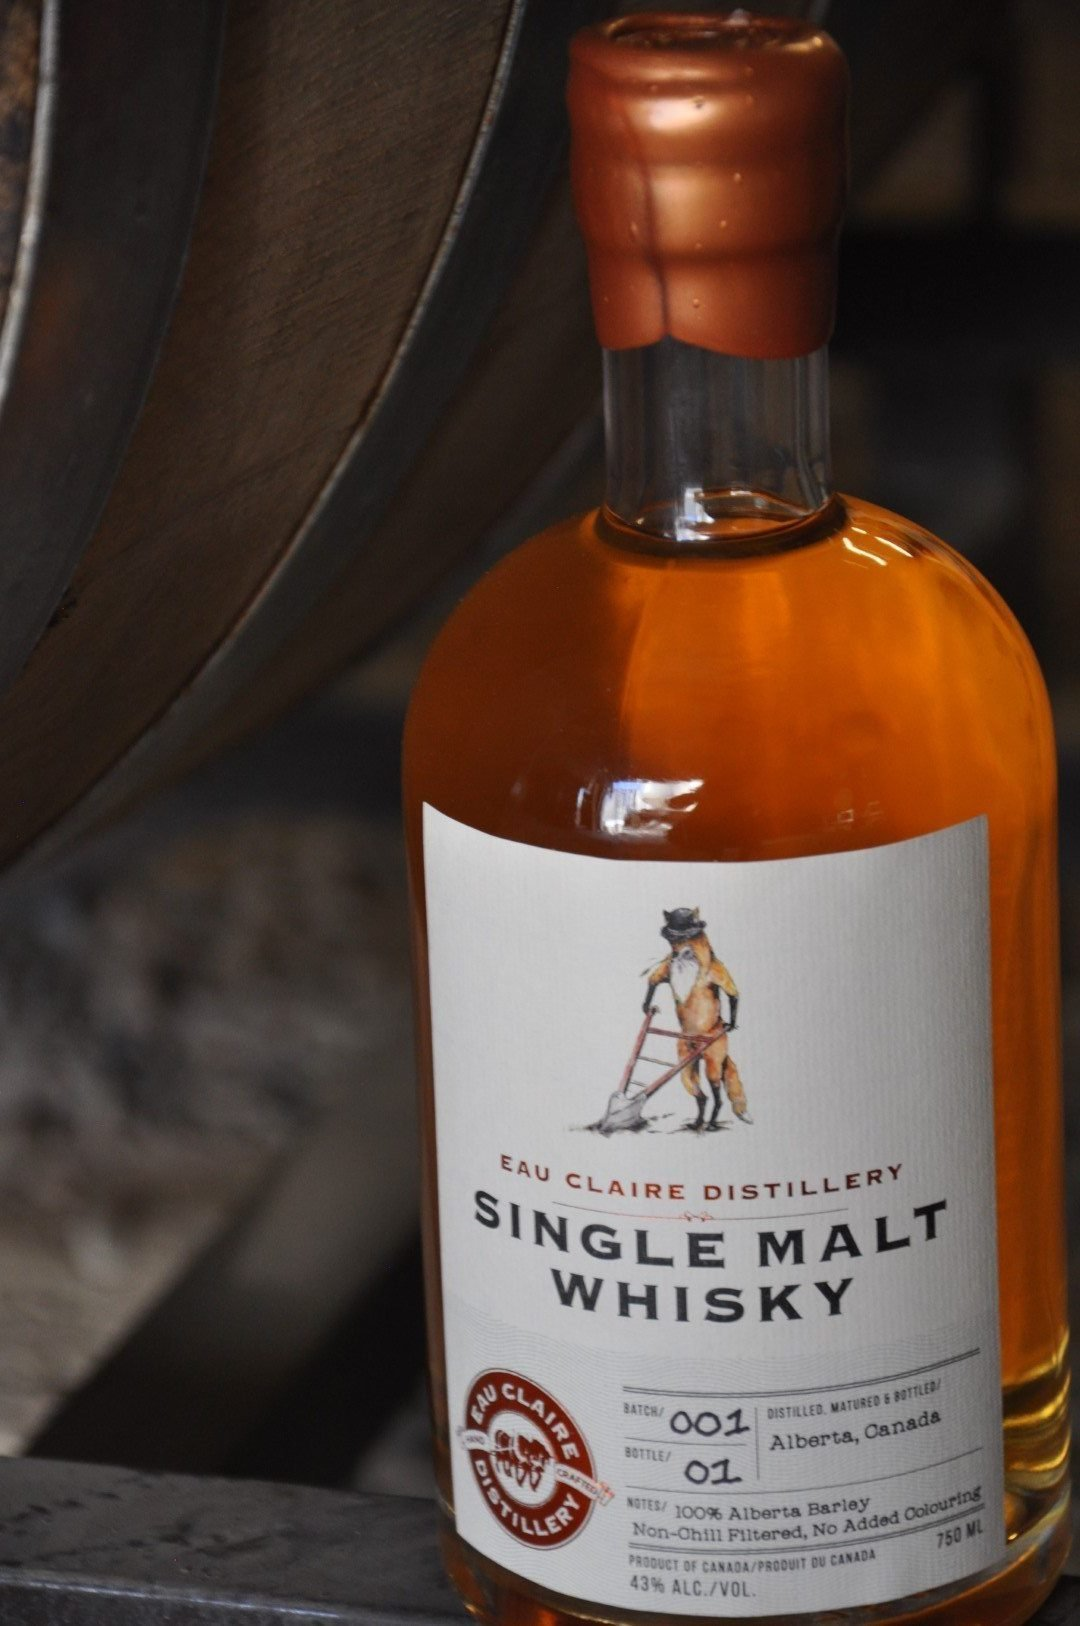 Eau Claire Distillery Single Malt Whiskey